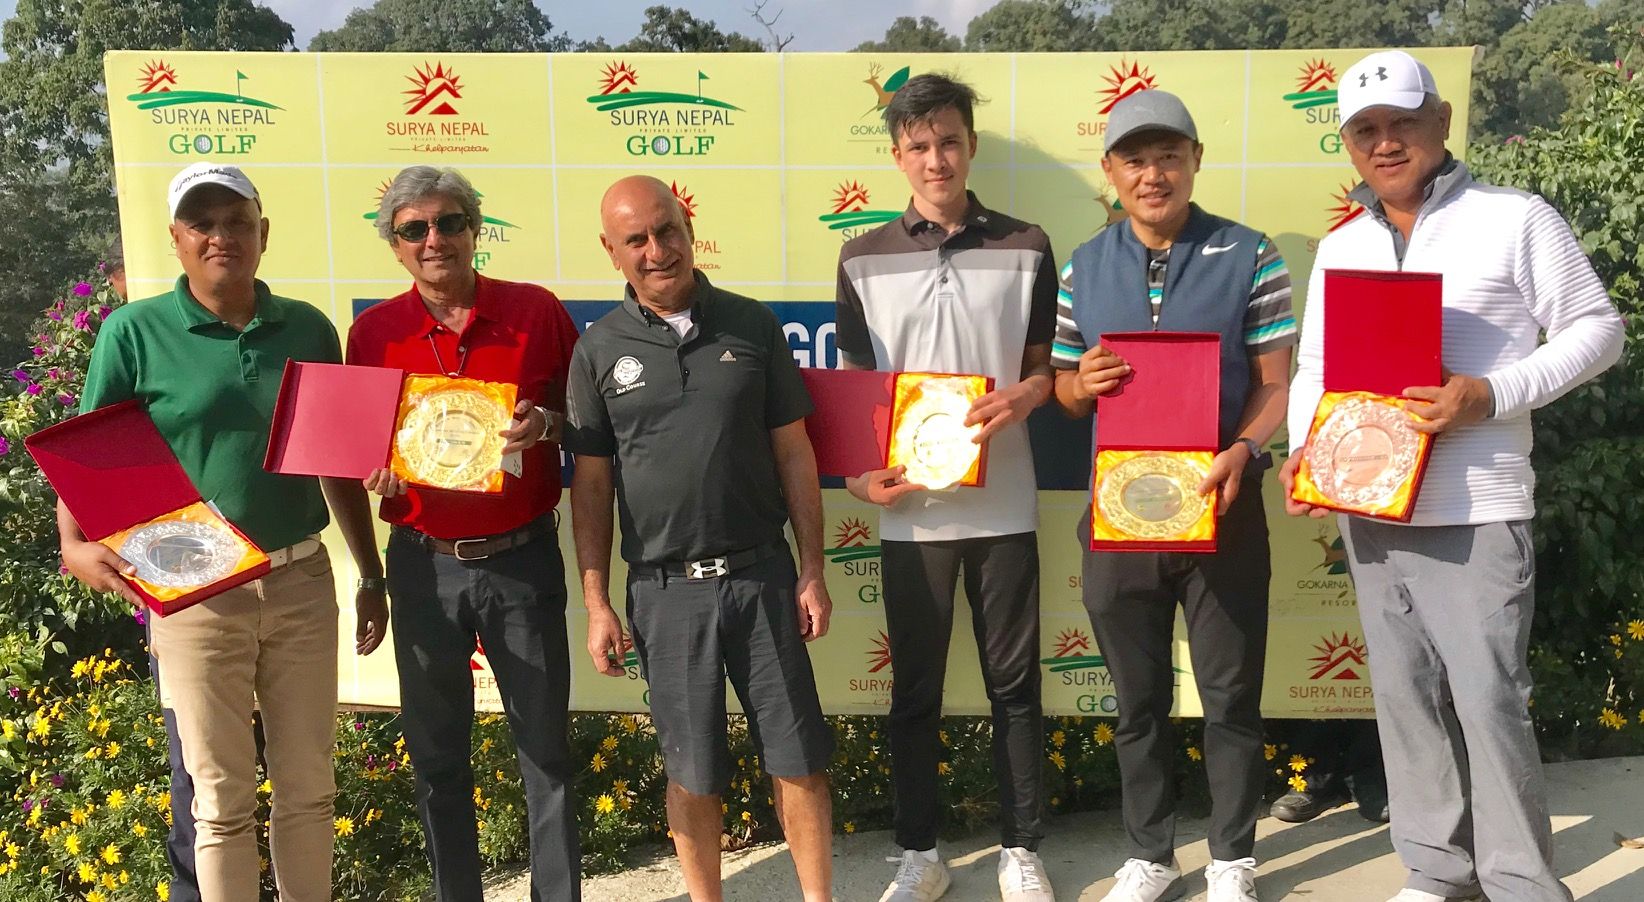 Harish Gorsia (right) and Gaurab Shah hold their trophies after the Surya Nepal Gokarna Monthly Medal at the Gokarna Golf Club in Kathmandu on Saturday, November 10, 2018. Photo: THT